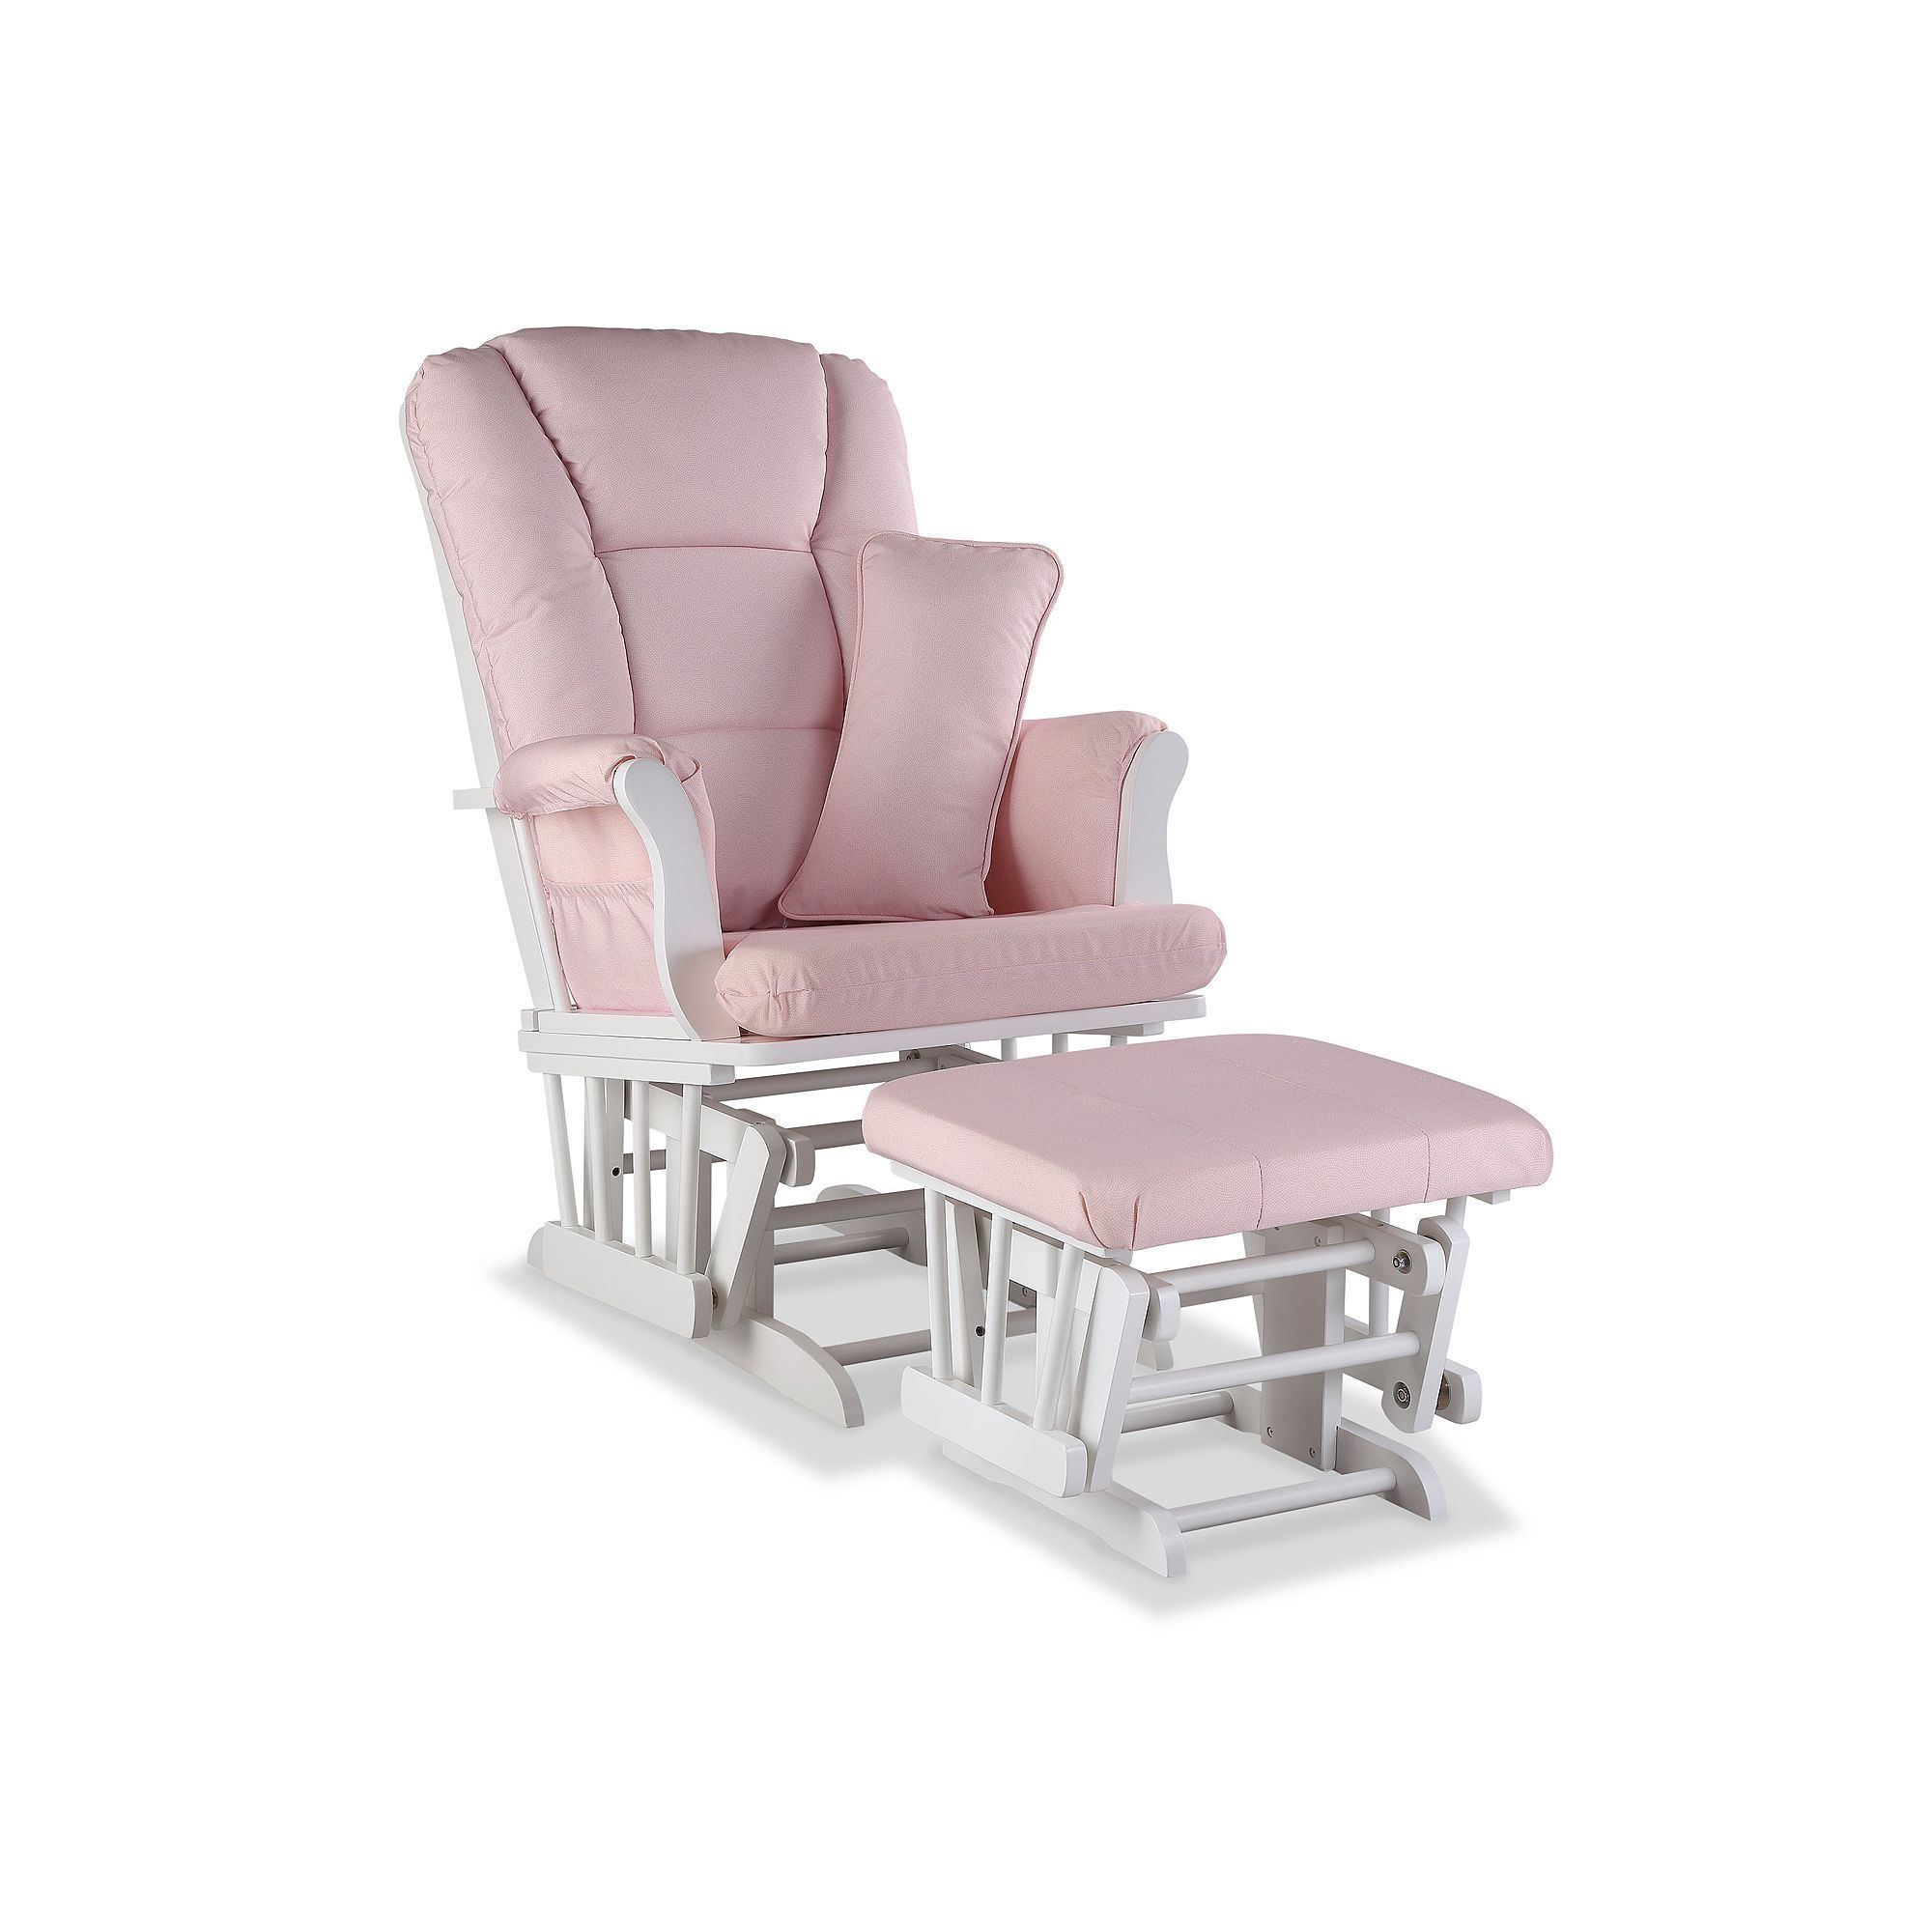 Stork Craft Tuscany Custom Glider Chair And Ottoman Set, Pink